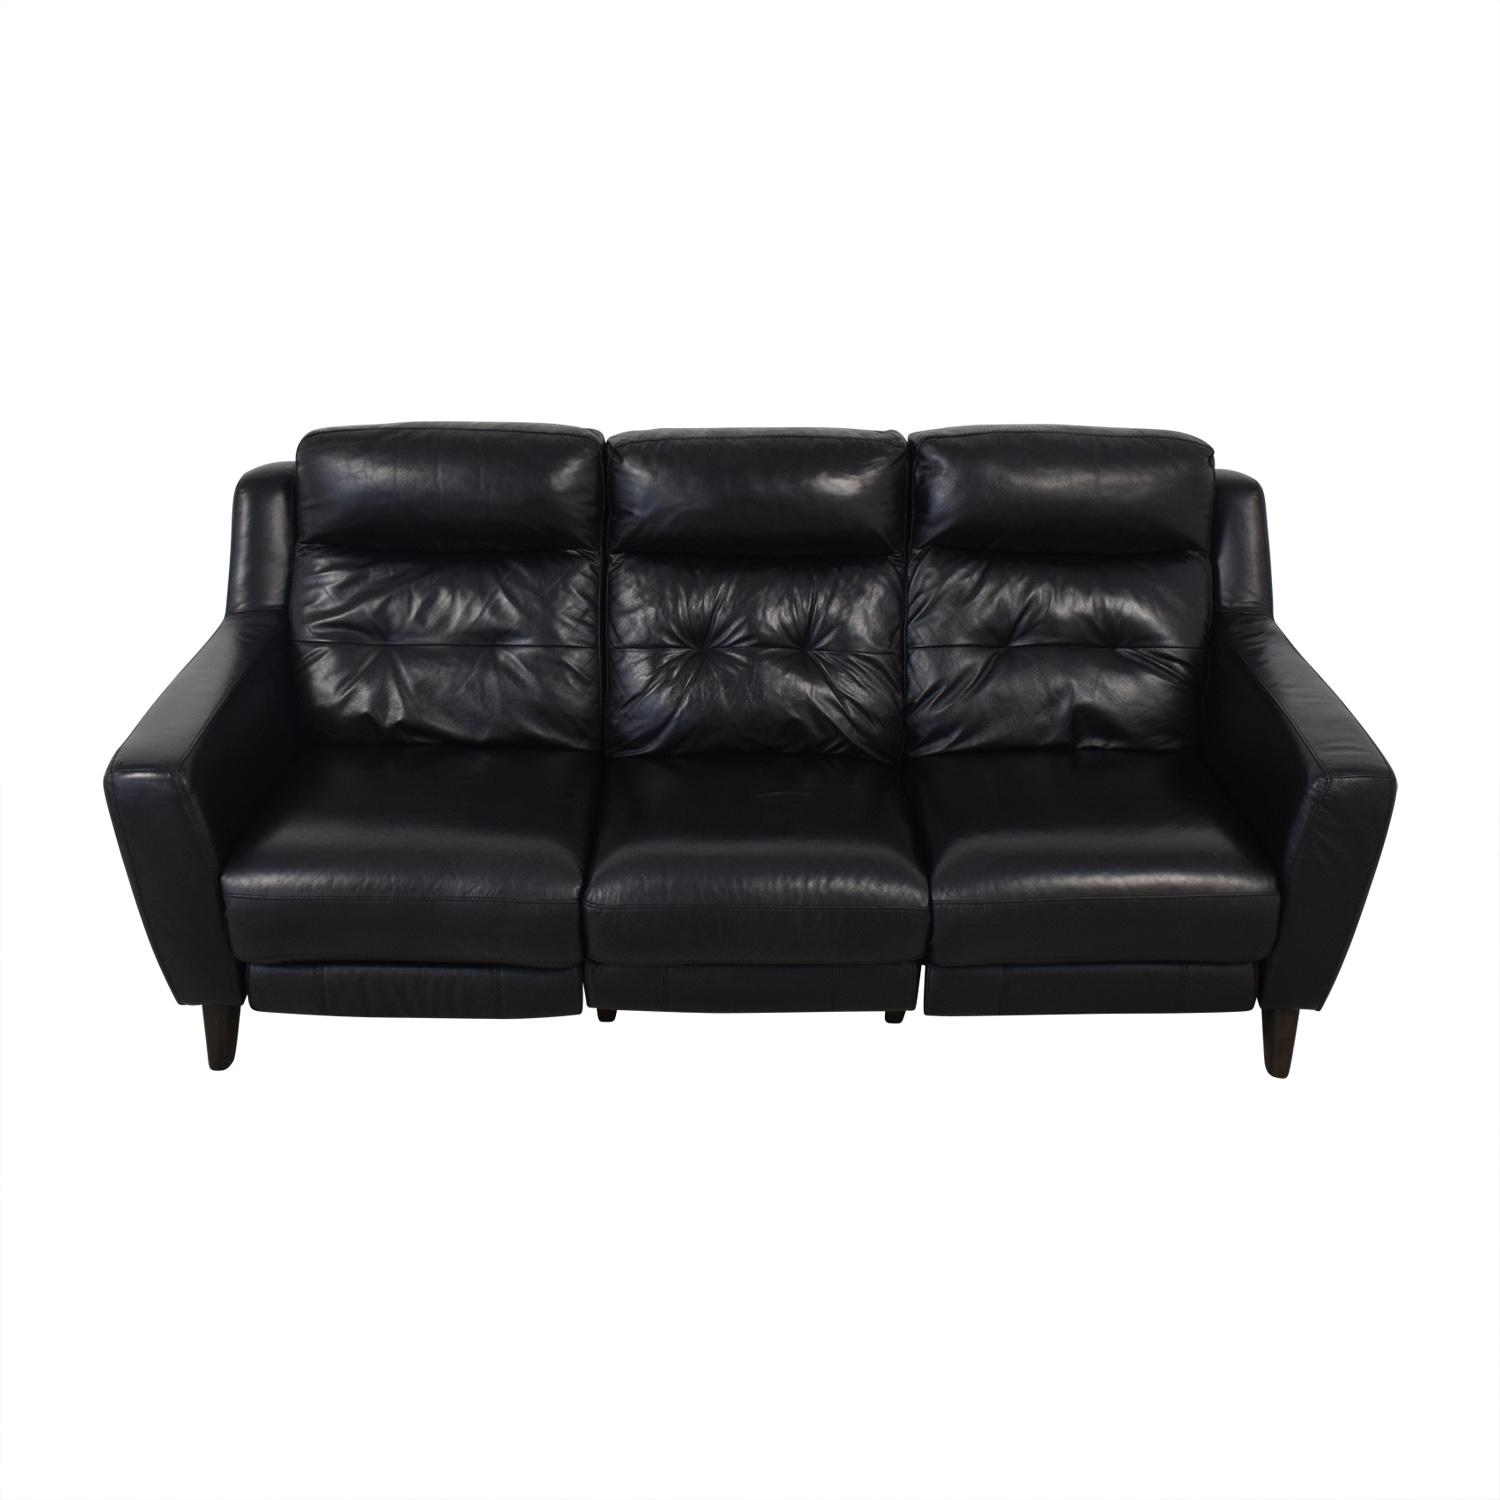 Cheap Recliner Sofas For Sale Black Leather Reclining: Bob's Discount Furniture Bob's Discount